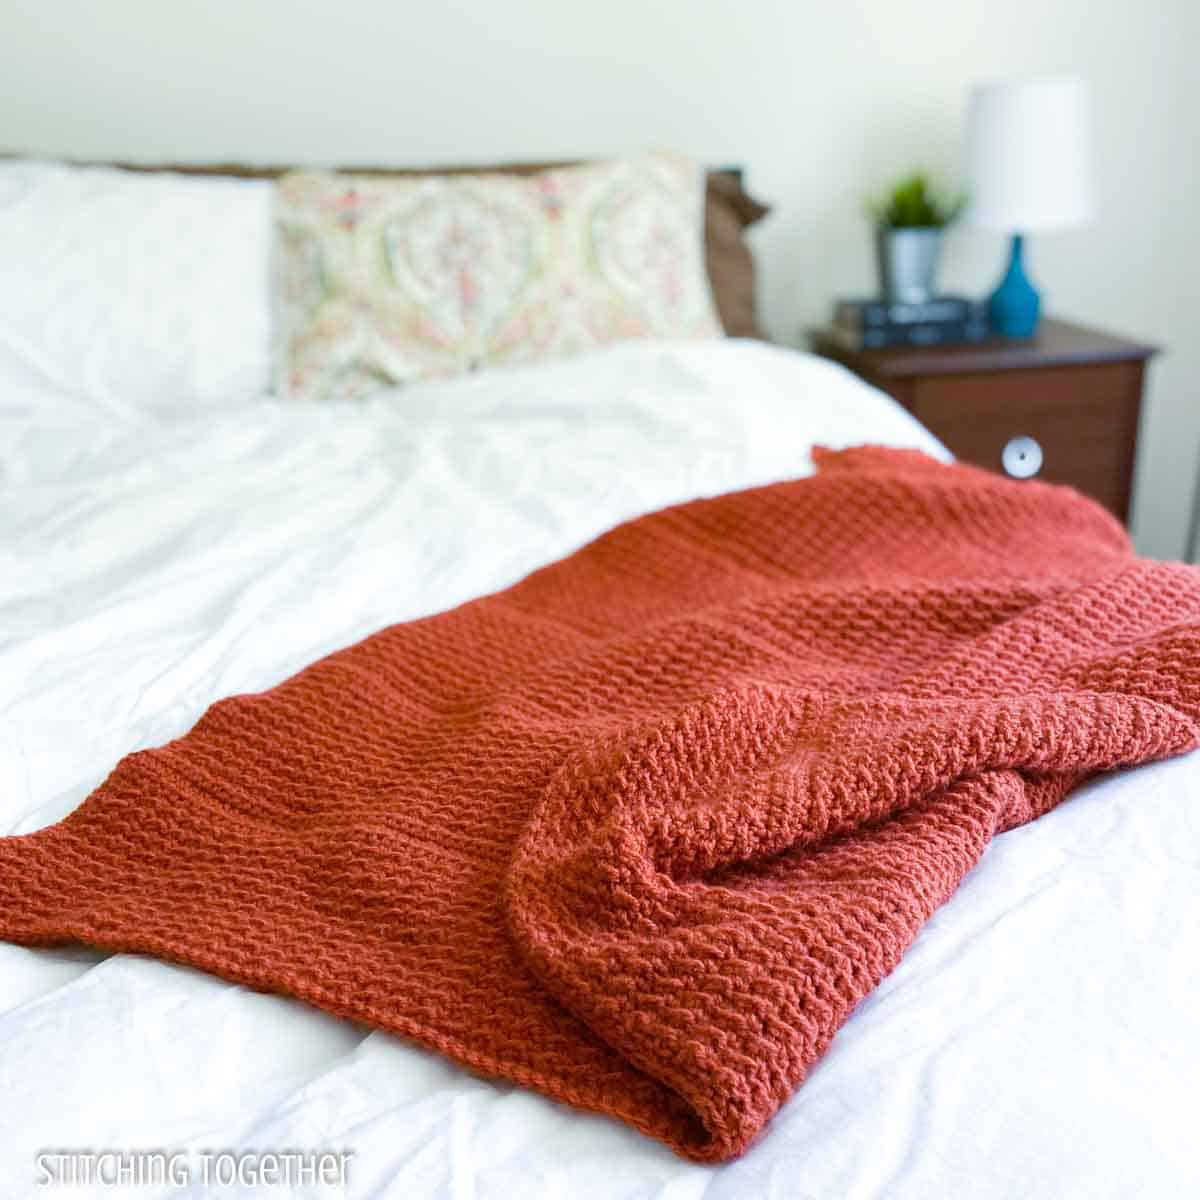 terracotta crochet lap throw draped on a bed